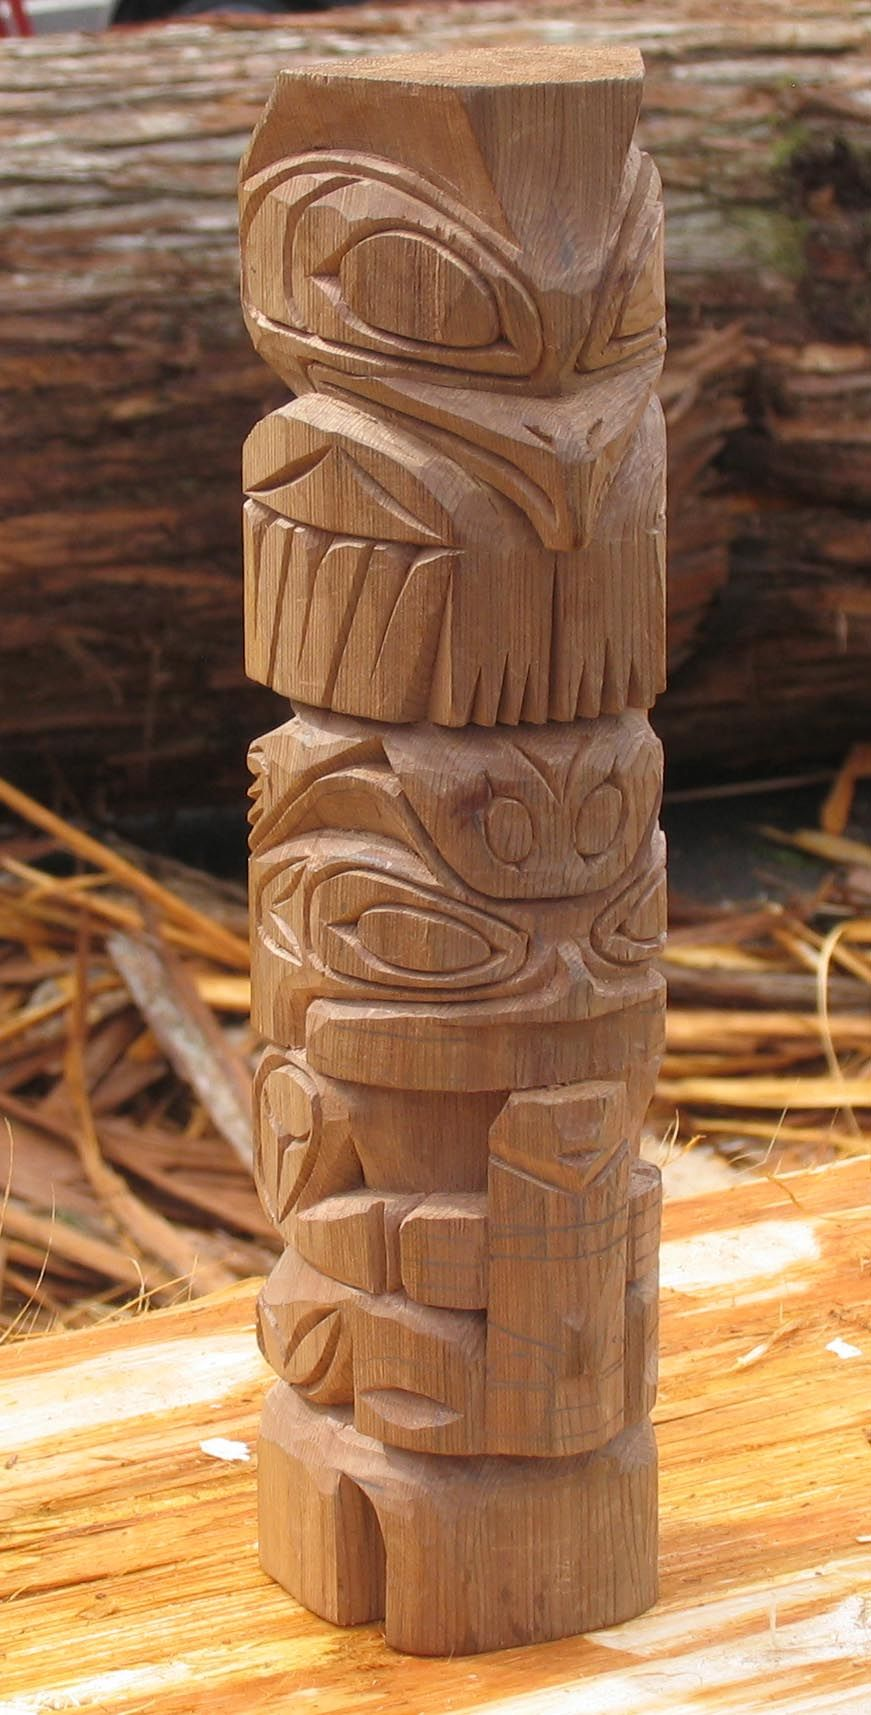 wooden totem pole - Google Search | Wooden ethnic ...